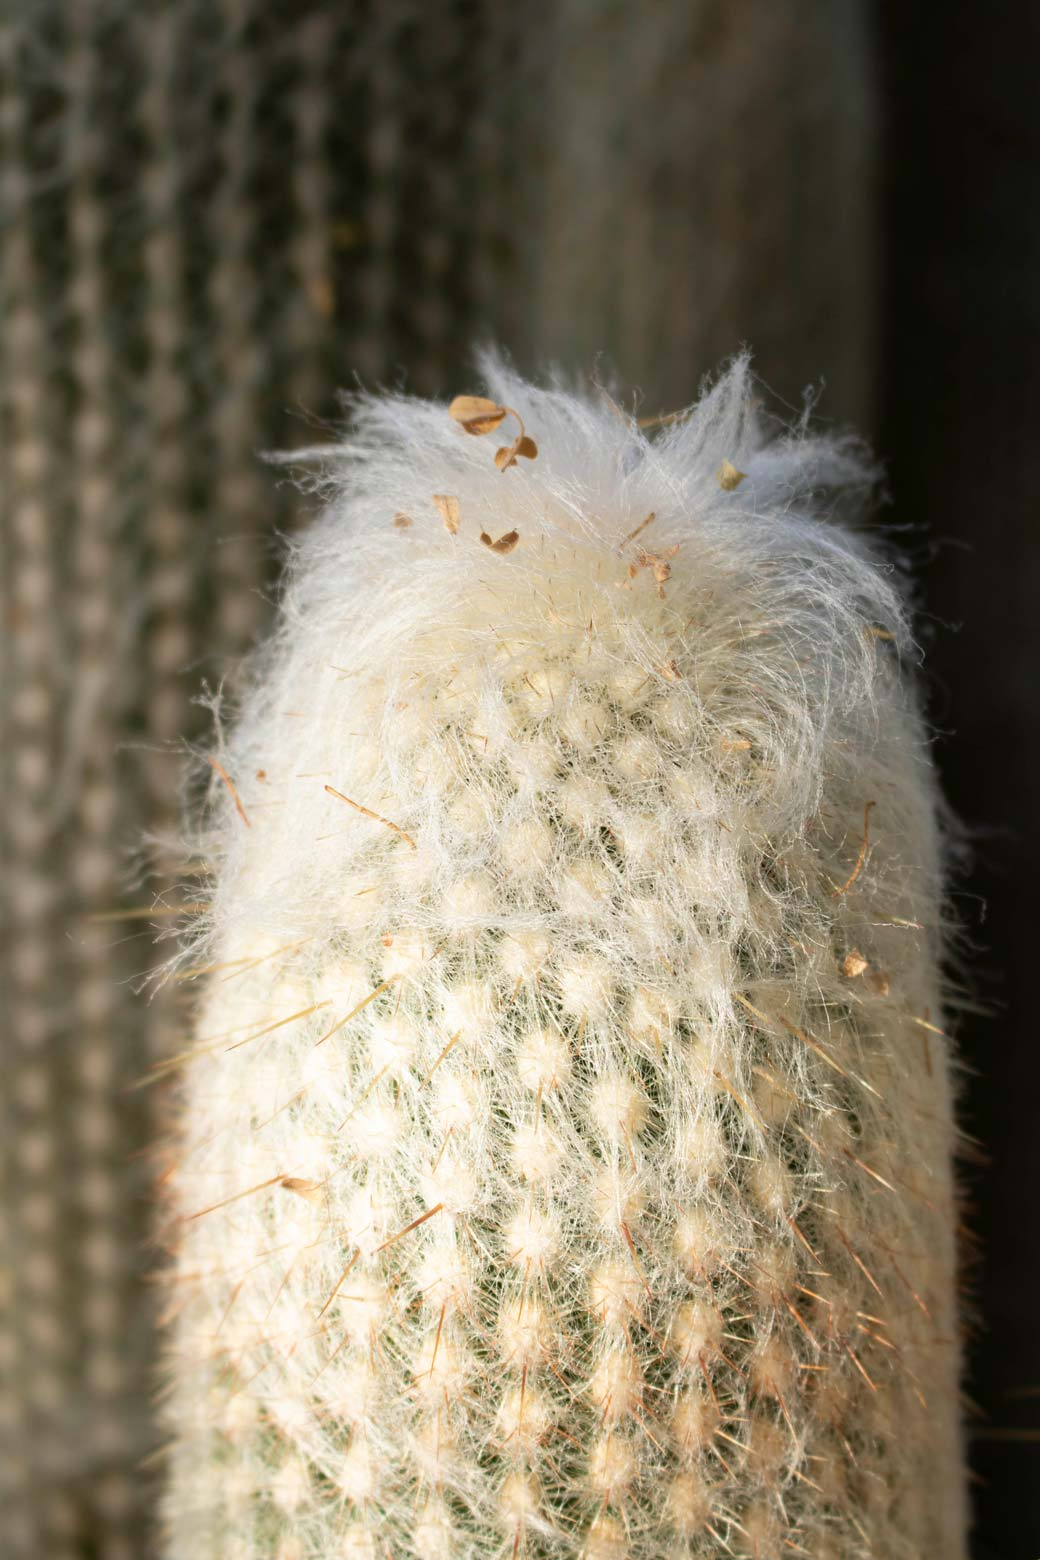 A close-up of the top of an Old Lady Cactus.